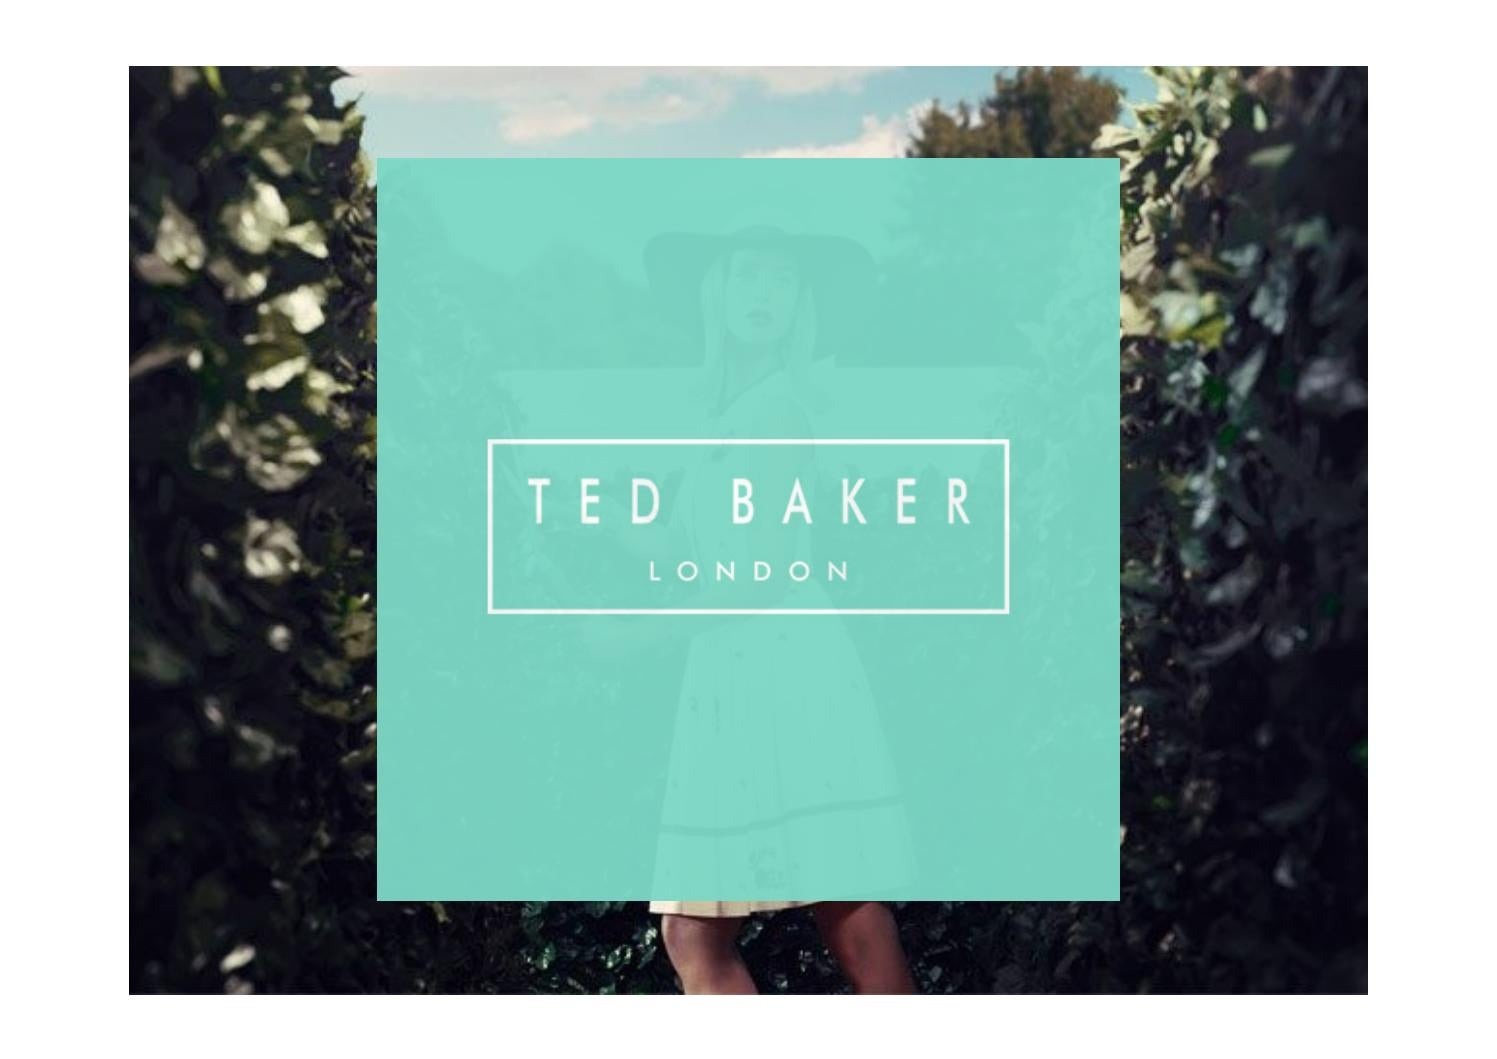 2862eea825d9 Ted Baker Brand analysis Identity Target Customer by rongfu1998 - issuu